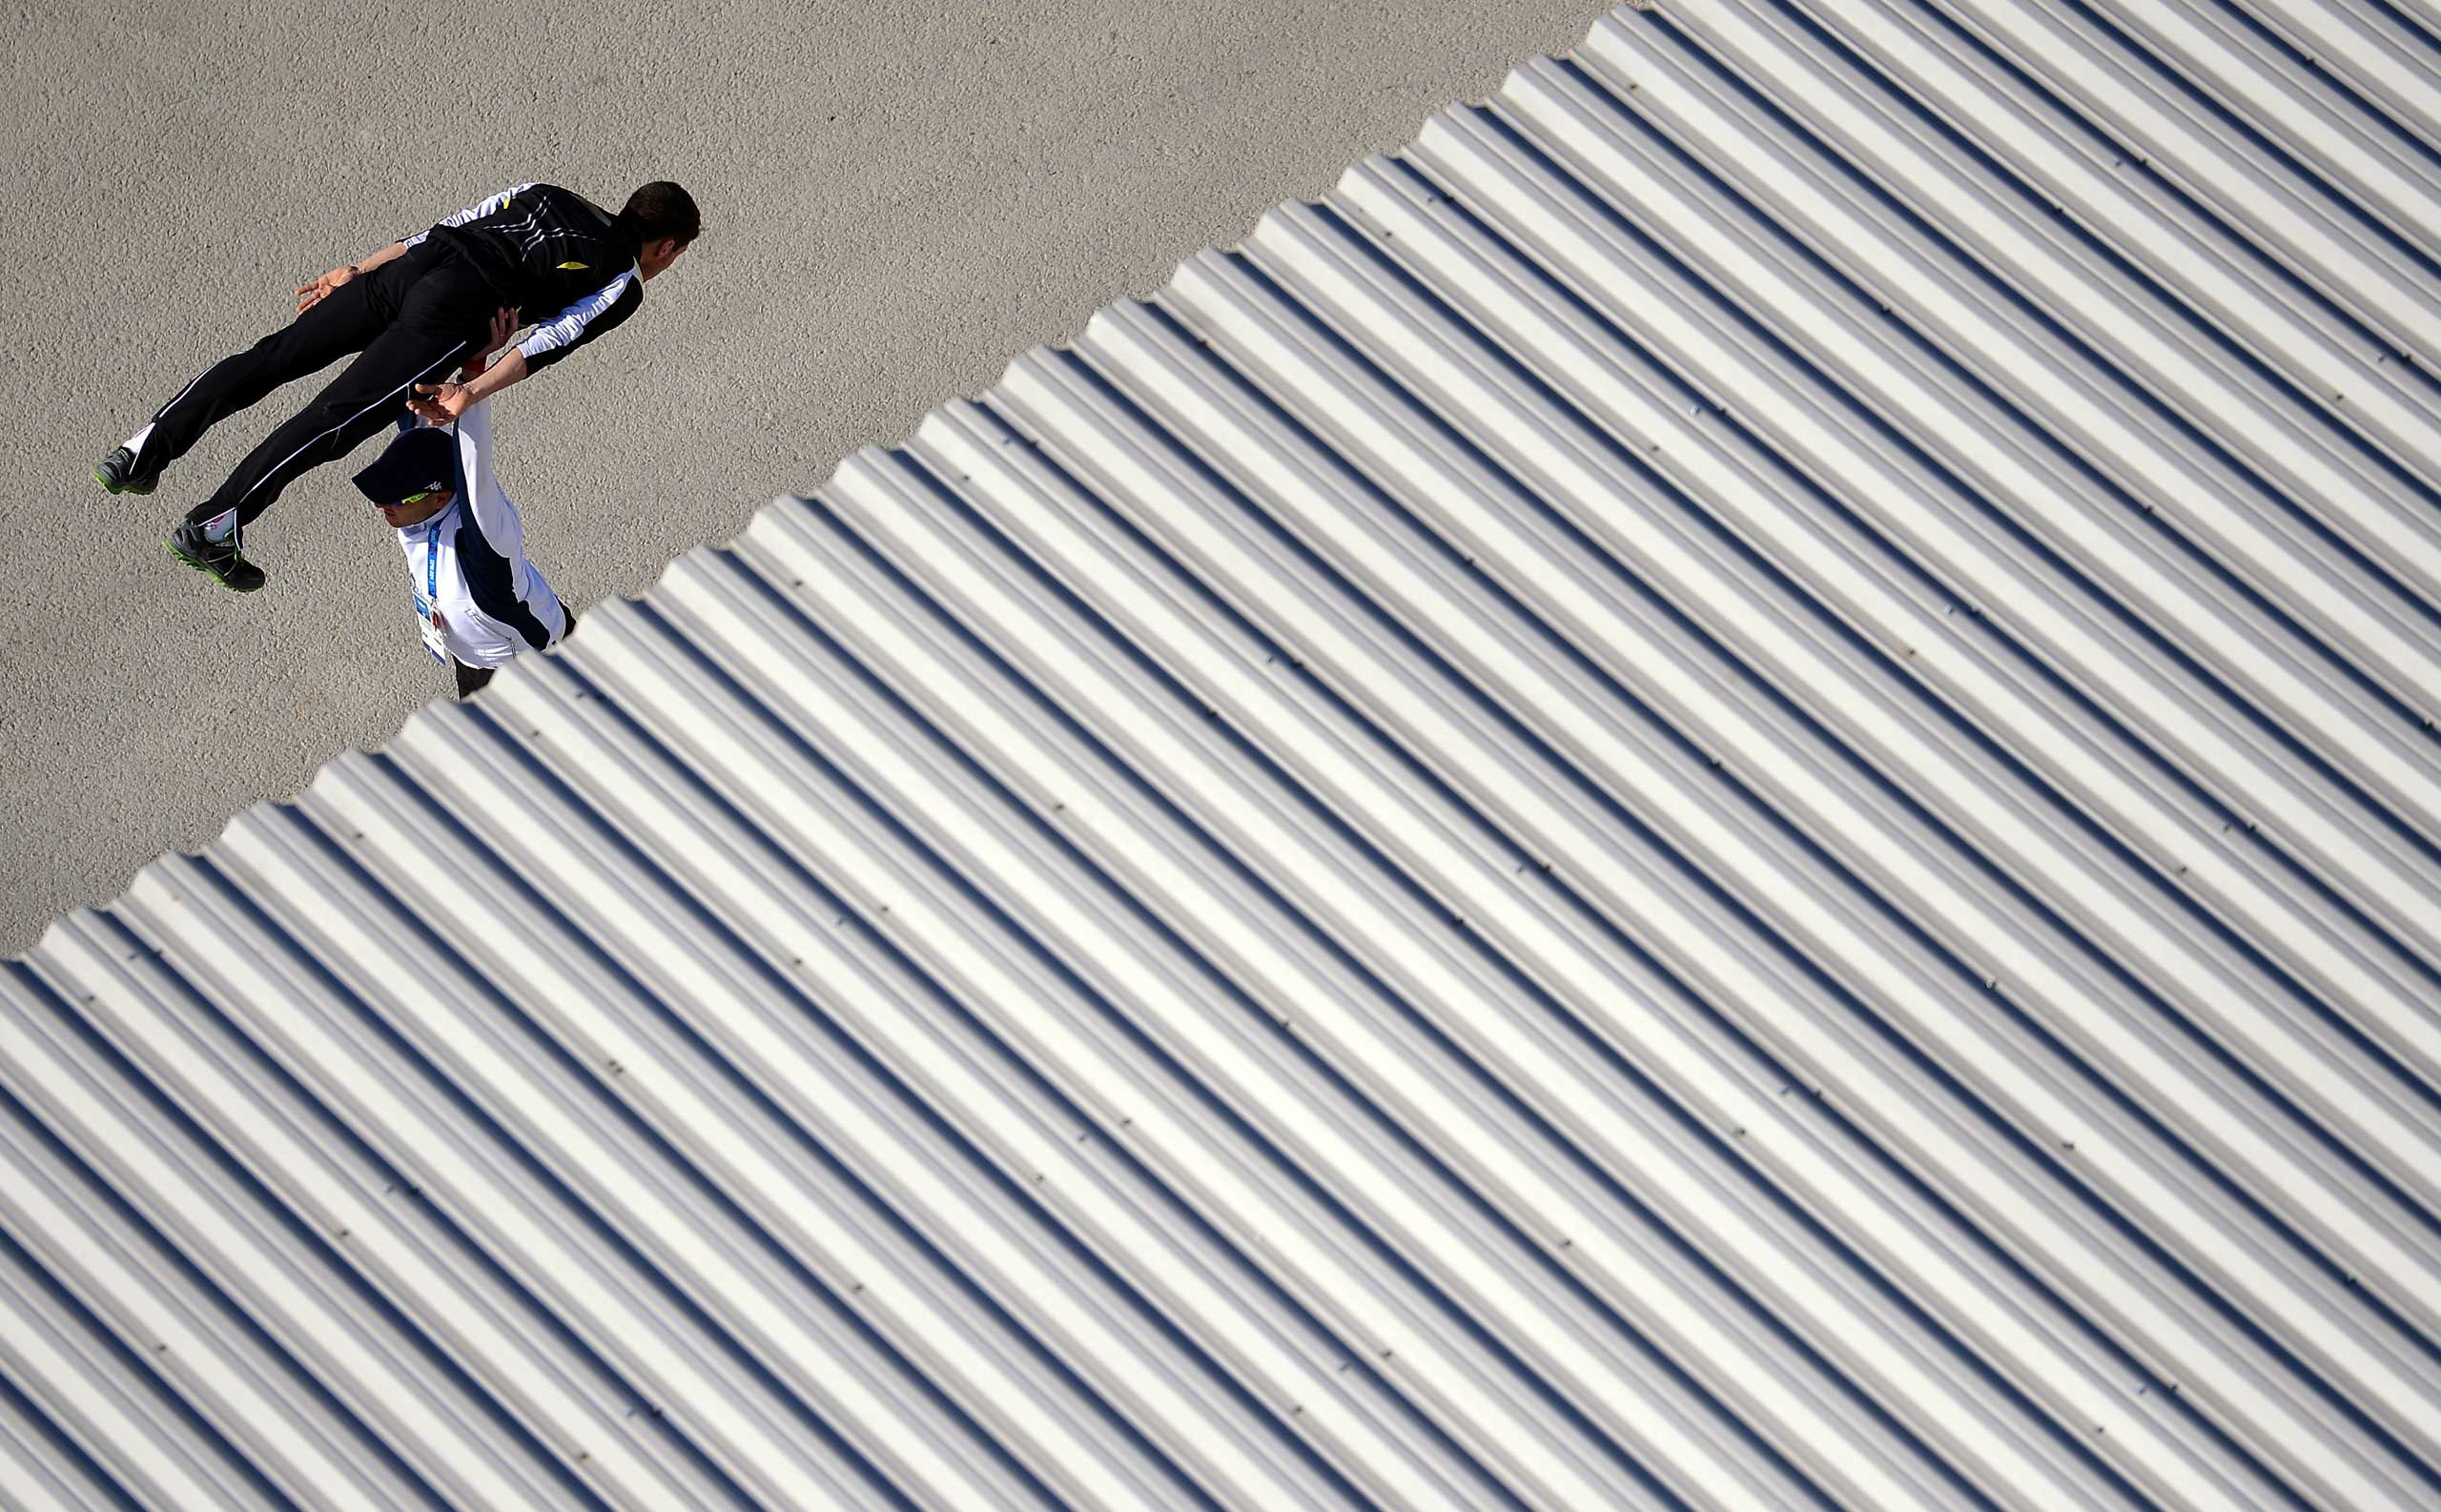 An athlete warms up with his coach prior to the Men's individual Gundersen large hill/10 km Nordic combined training at the Sochi 2014 Winter Olympics at the RusSki Gorki Ski Jumping Center in Sochi, Russia. Feb. 15, 2014.